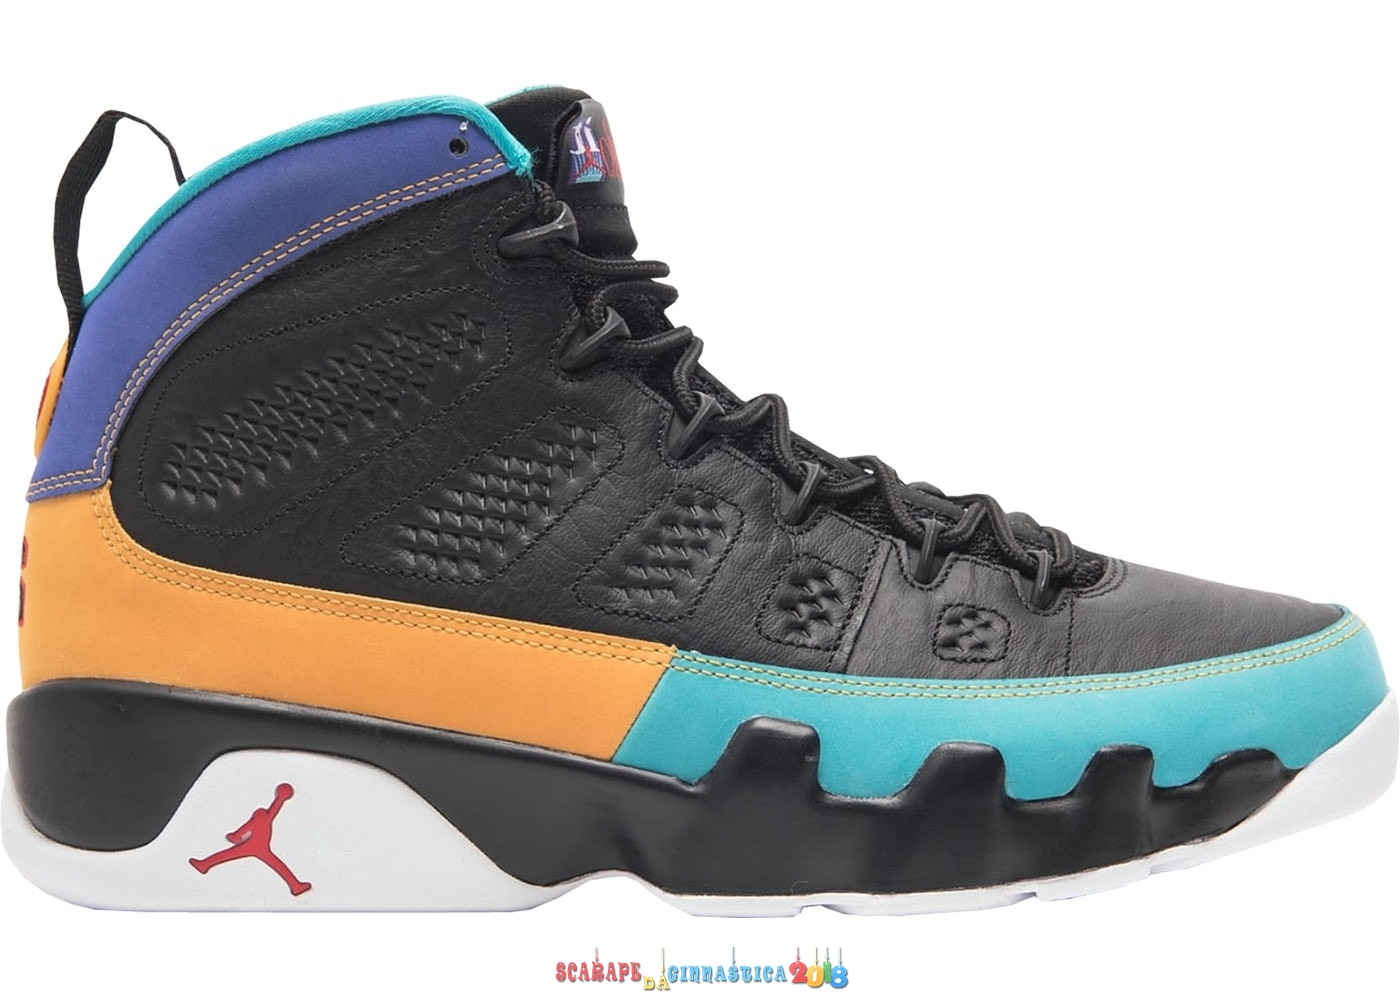 Nuovi Prodotti Air Jordan 9 Retro Dream It Do It Nero (302370-065) - Uomo Replica